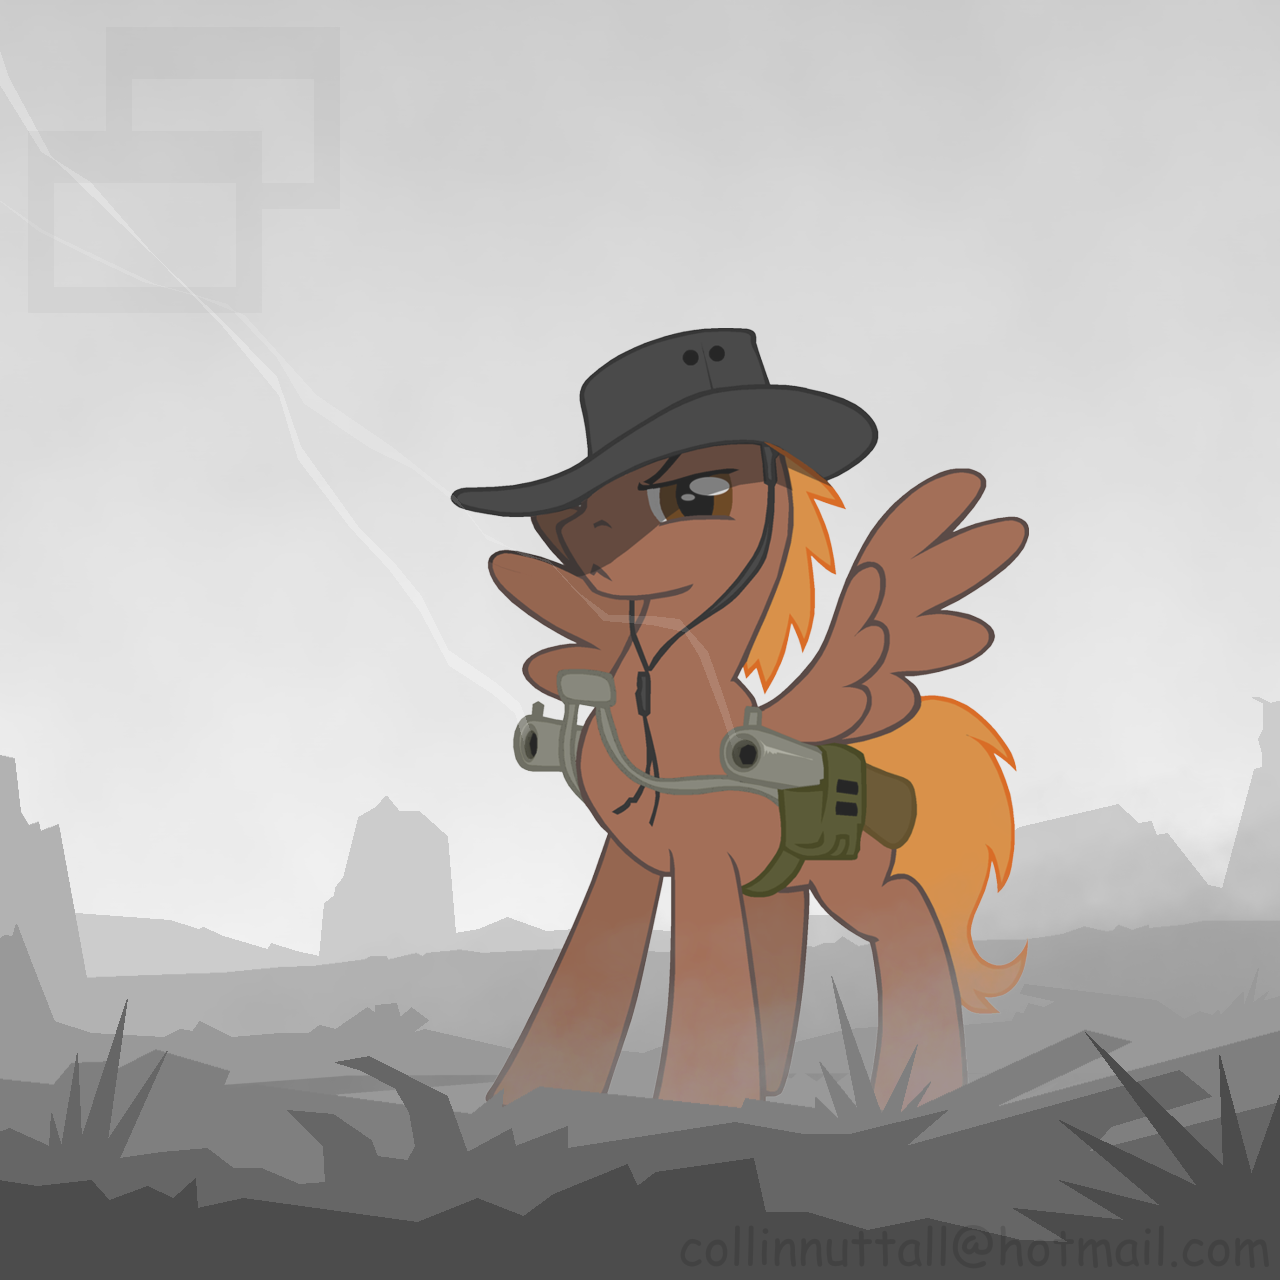 Calamity Fallout Equestria Wiki Fandom Powered By Wikia